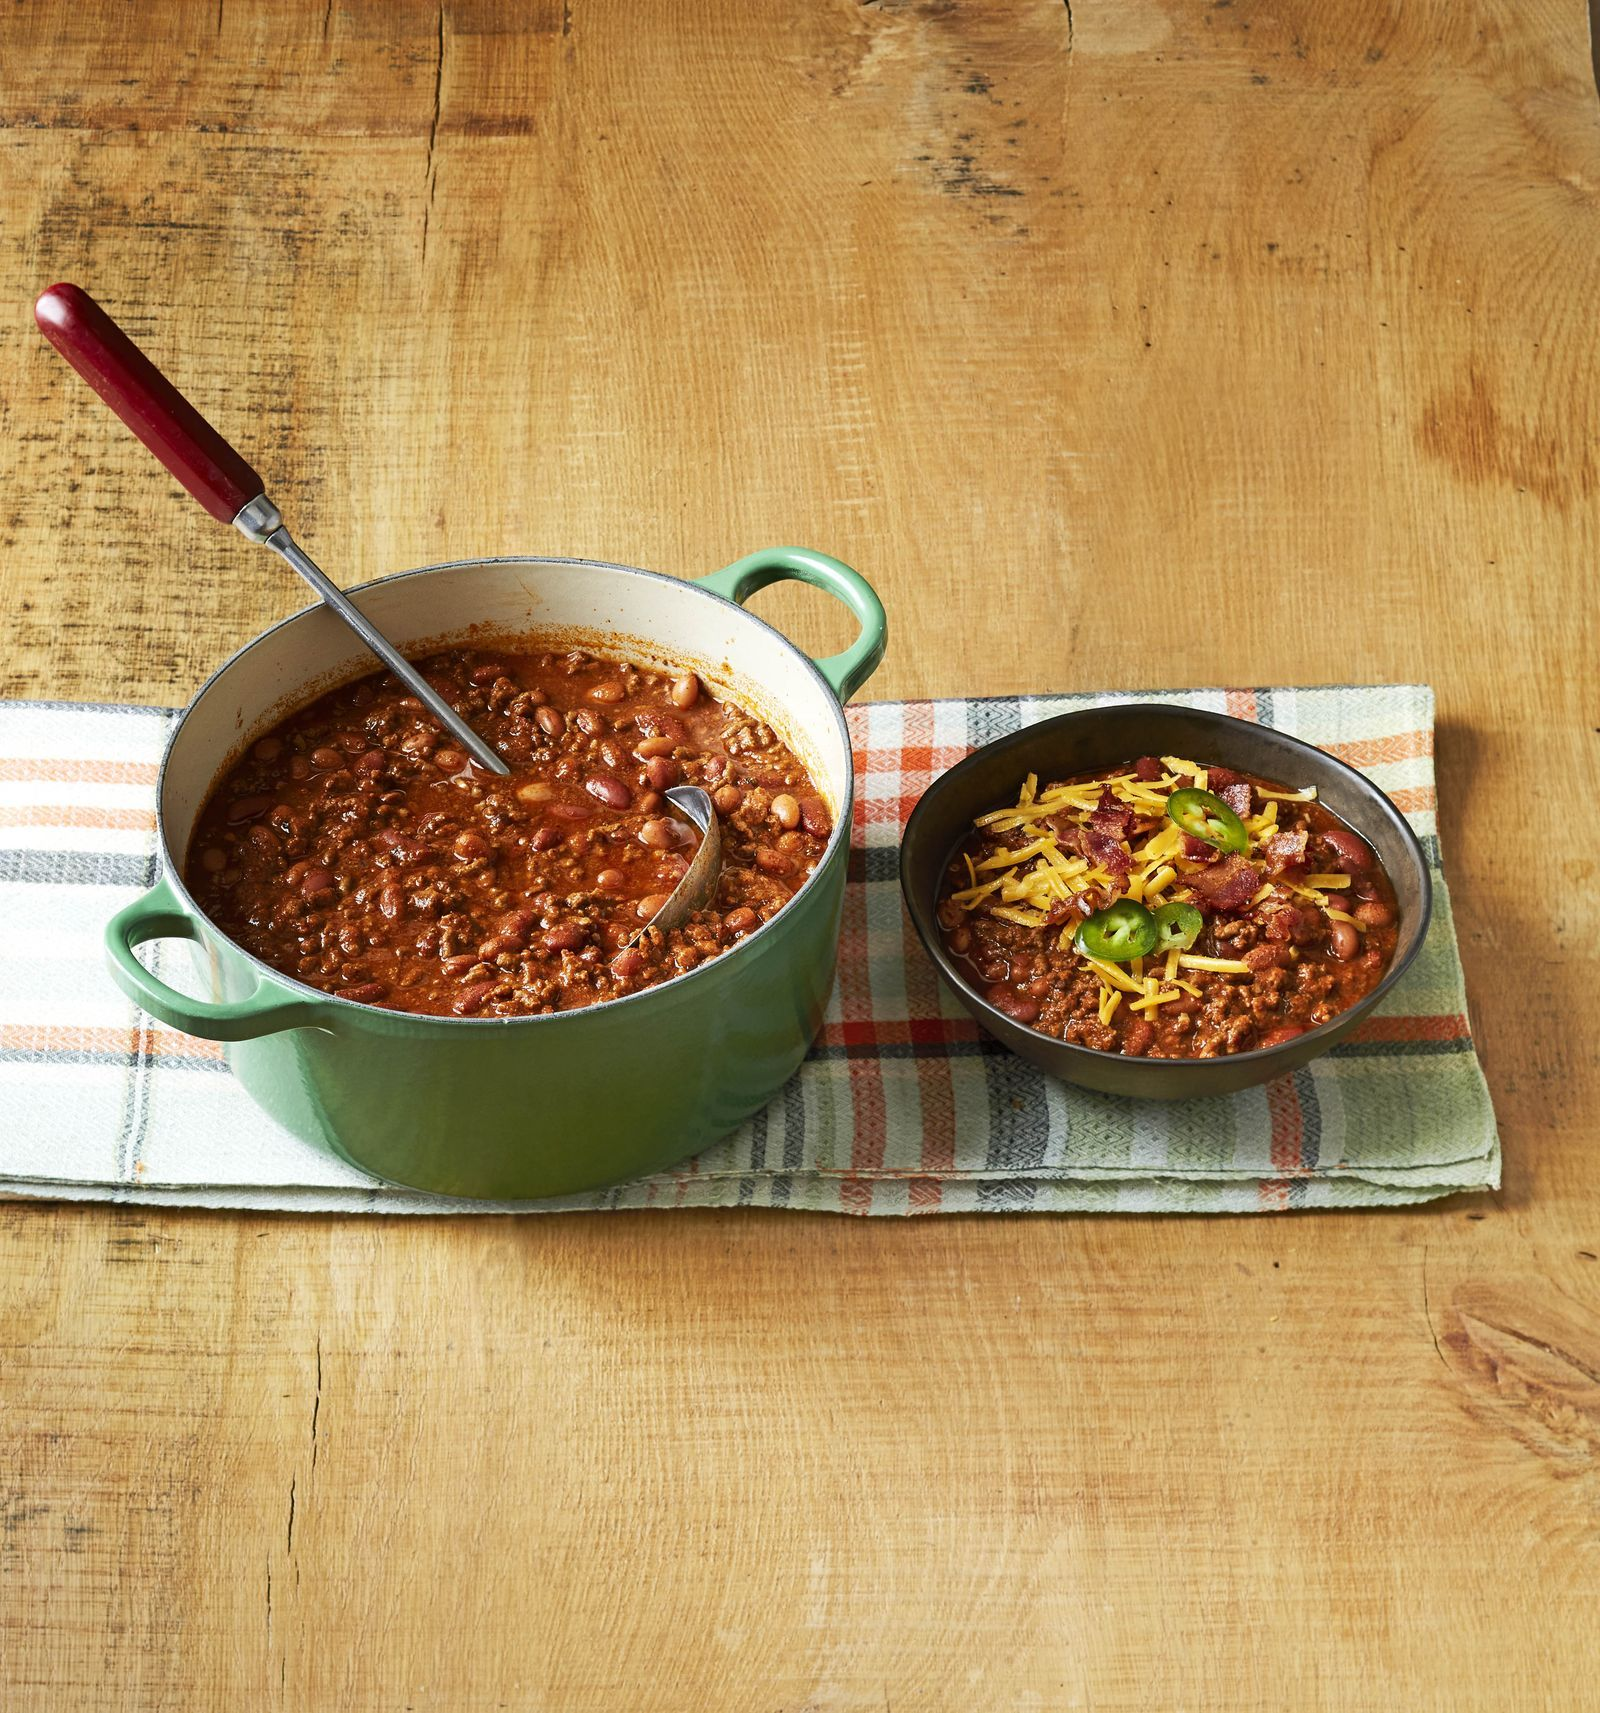 Beef And Bean Chili Recipe In 2020 Recipes Food Network Recipes Soup Recipes